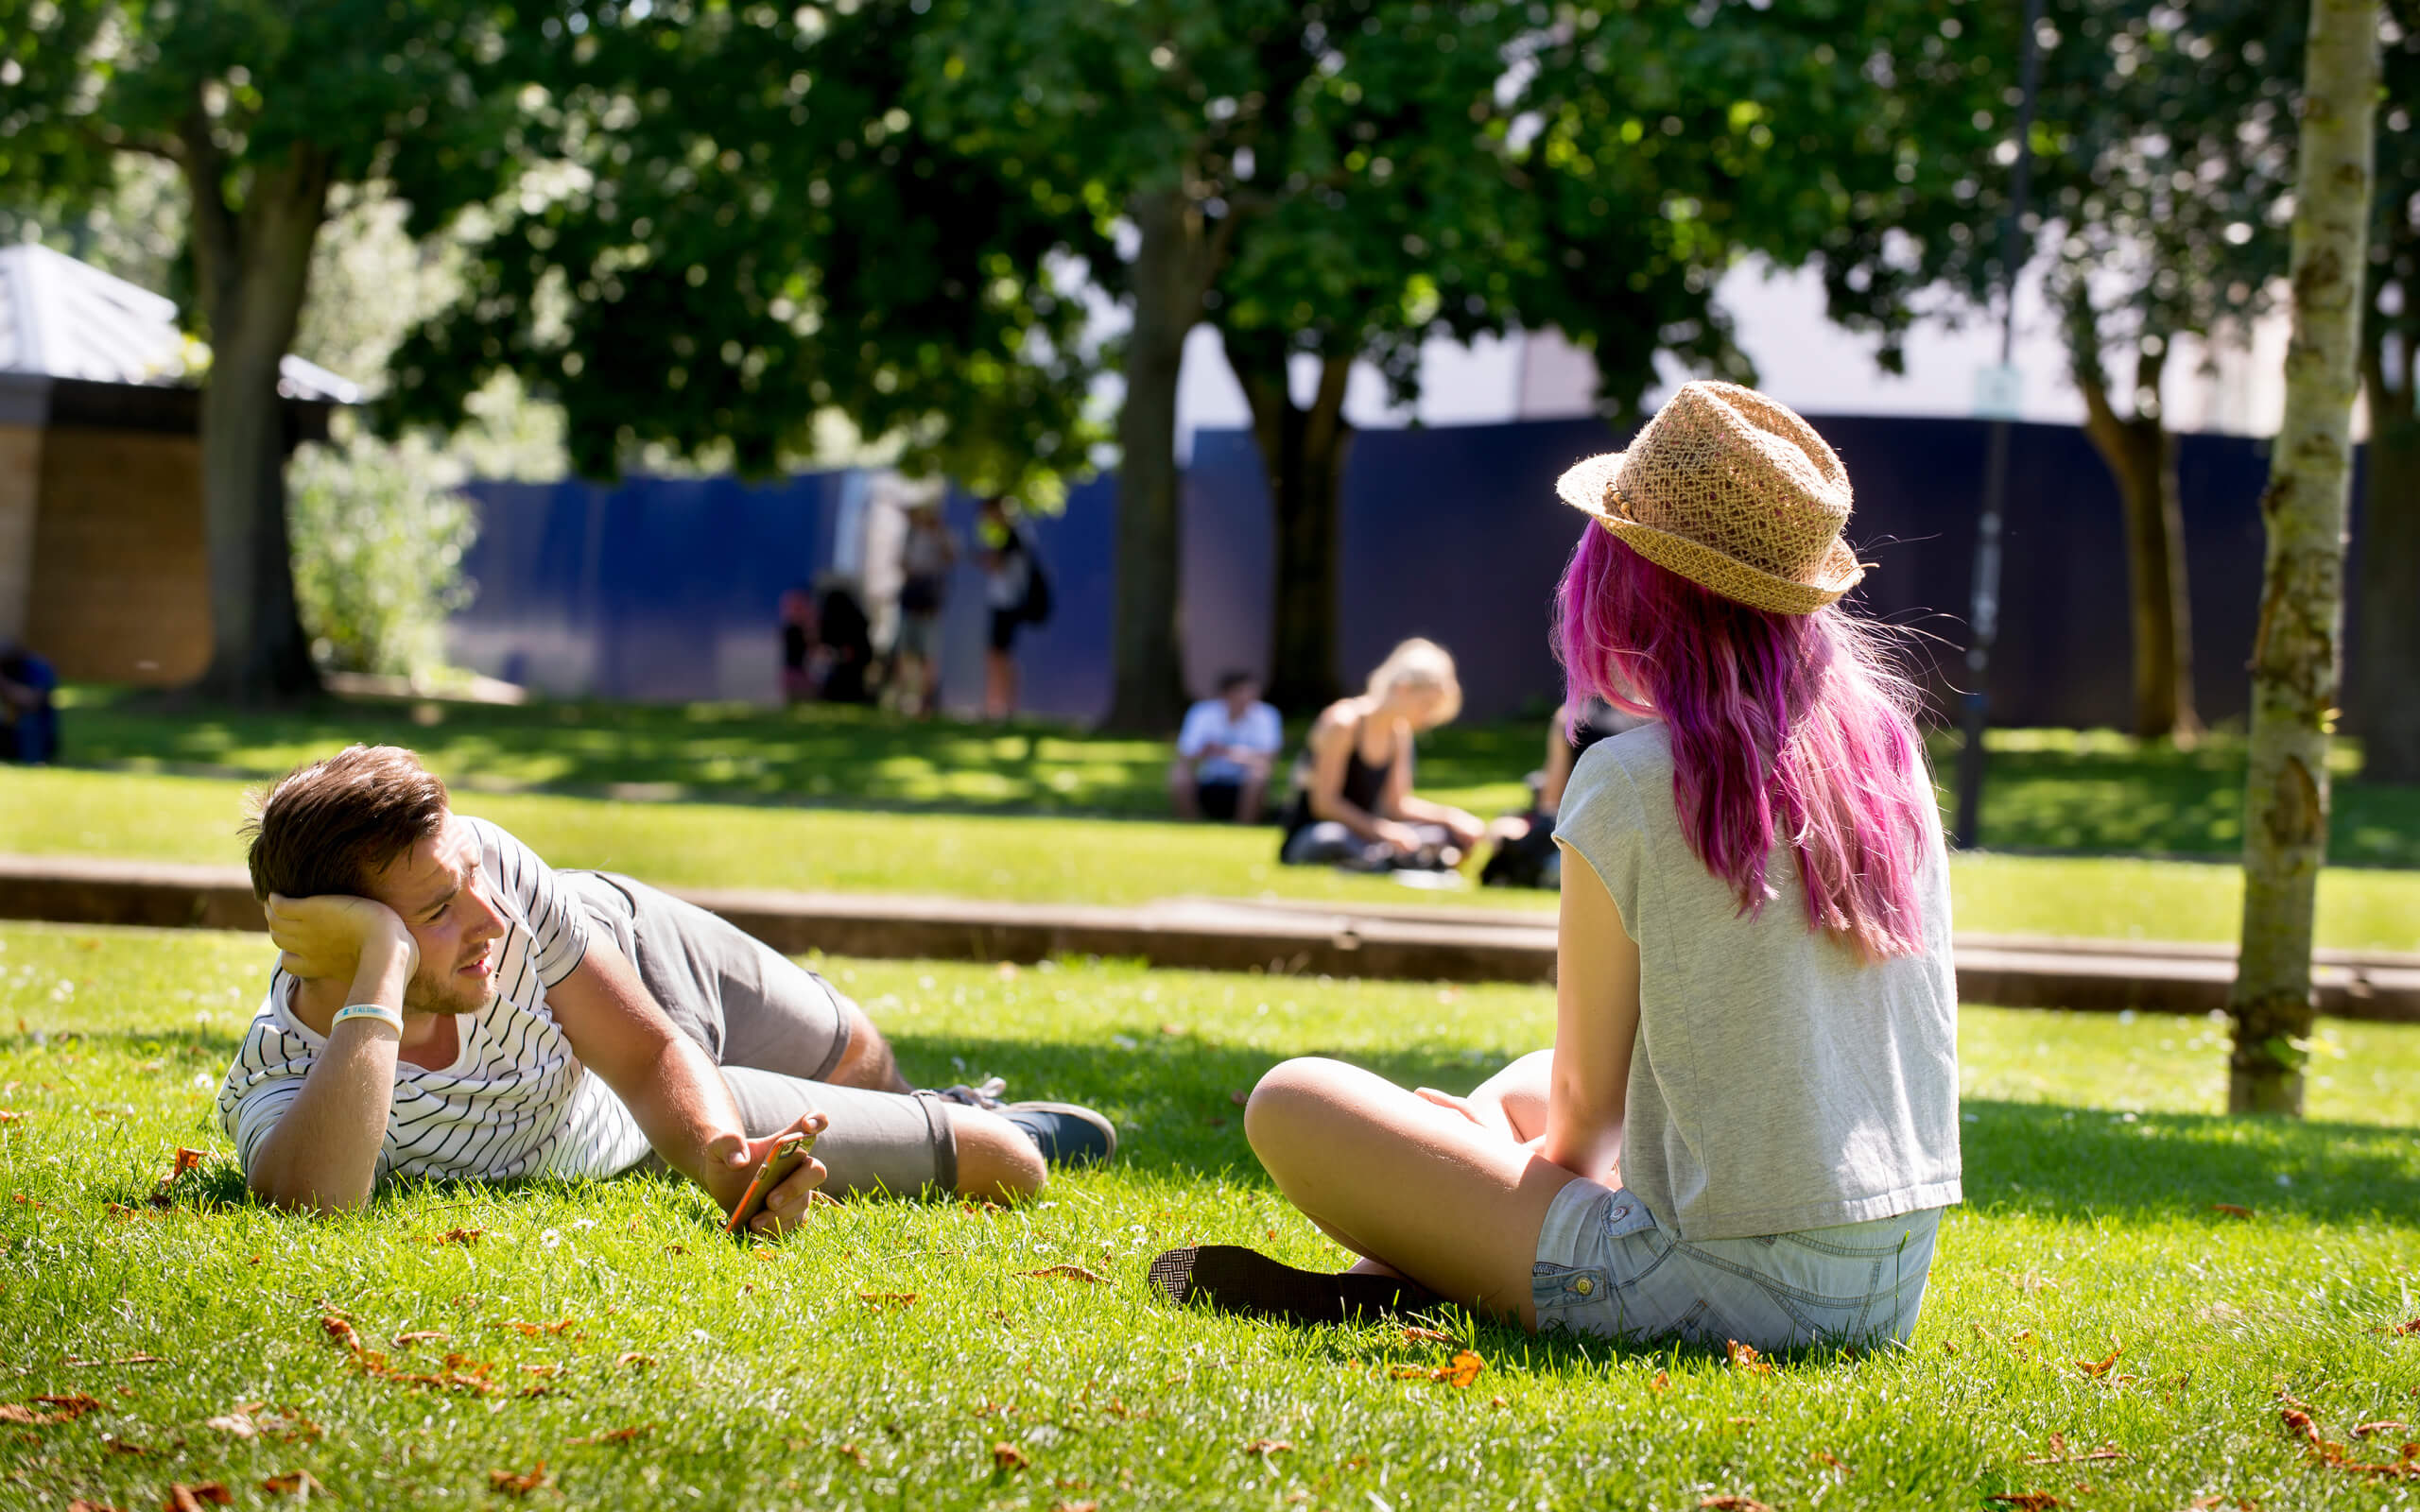 Two students talking in an outdoor space